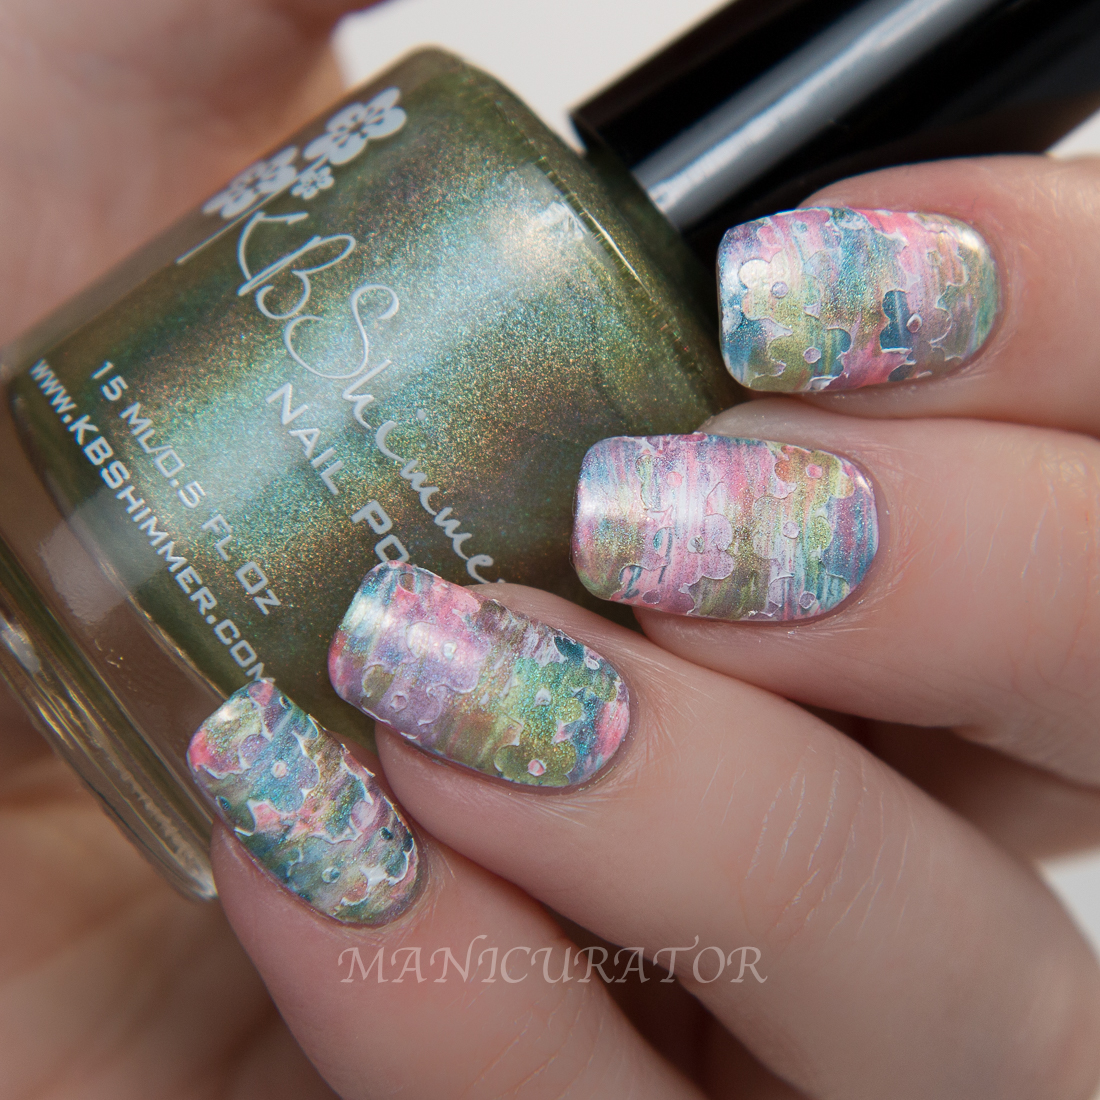 KBShimmer-Spring-Ins-and-Sprout-fan-brush-flower-nail-art